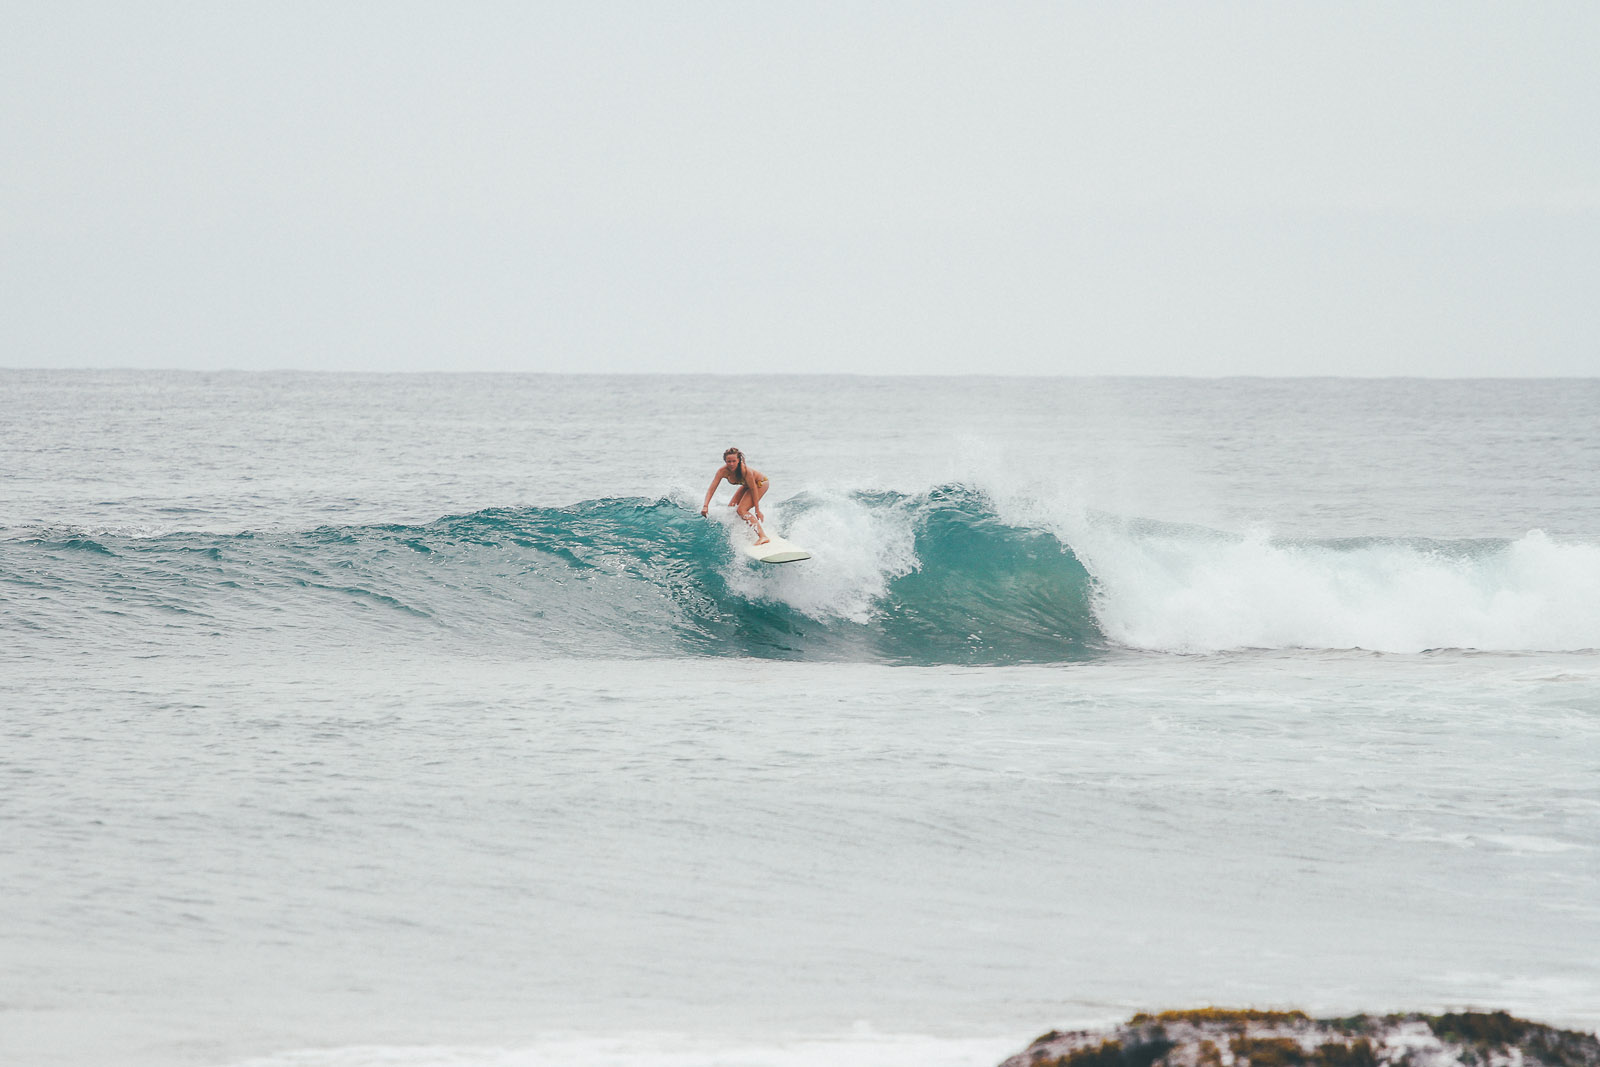 Sunshinestories-surf-travel-blog-IMG_0667